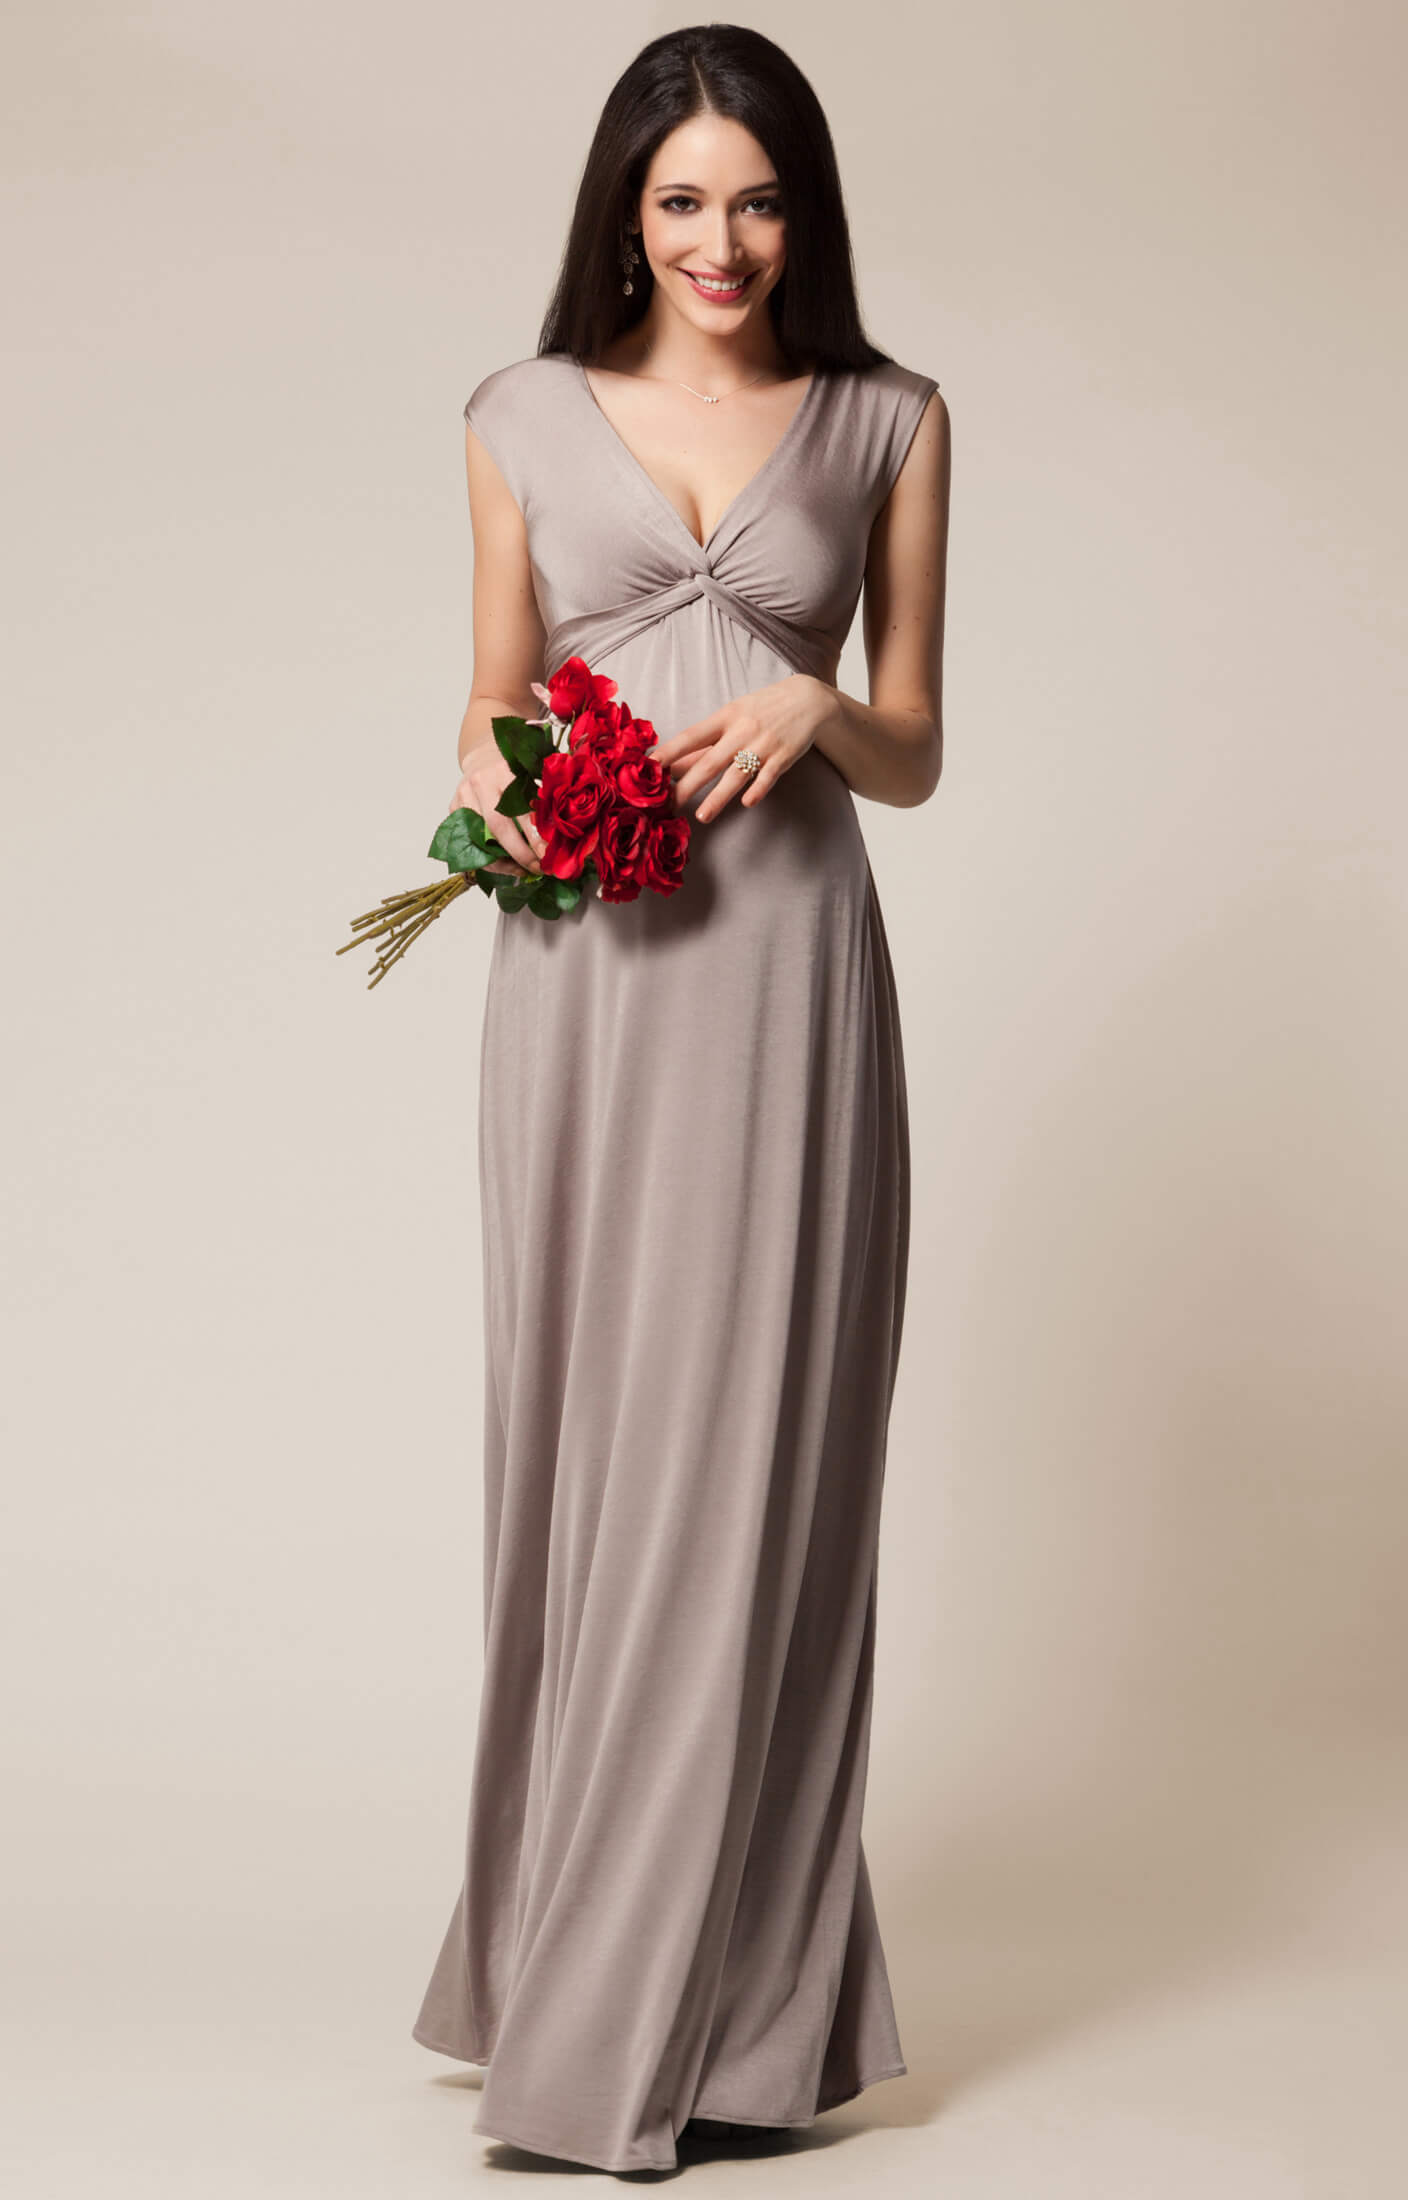 clara maternity gown long mocha maternity wedding dresses evening wear and party clothes by